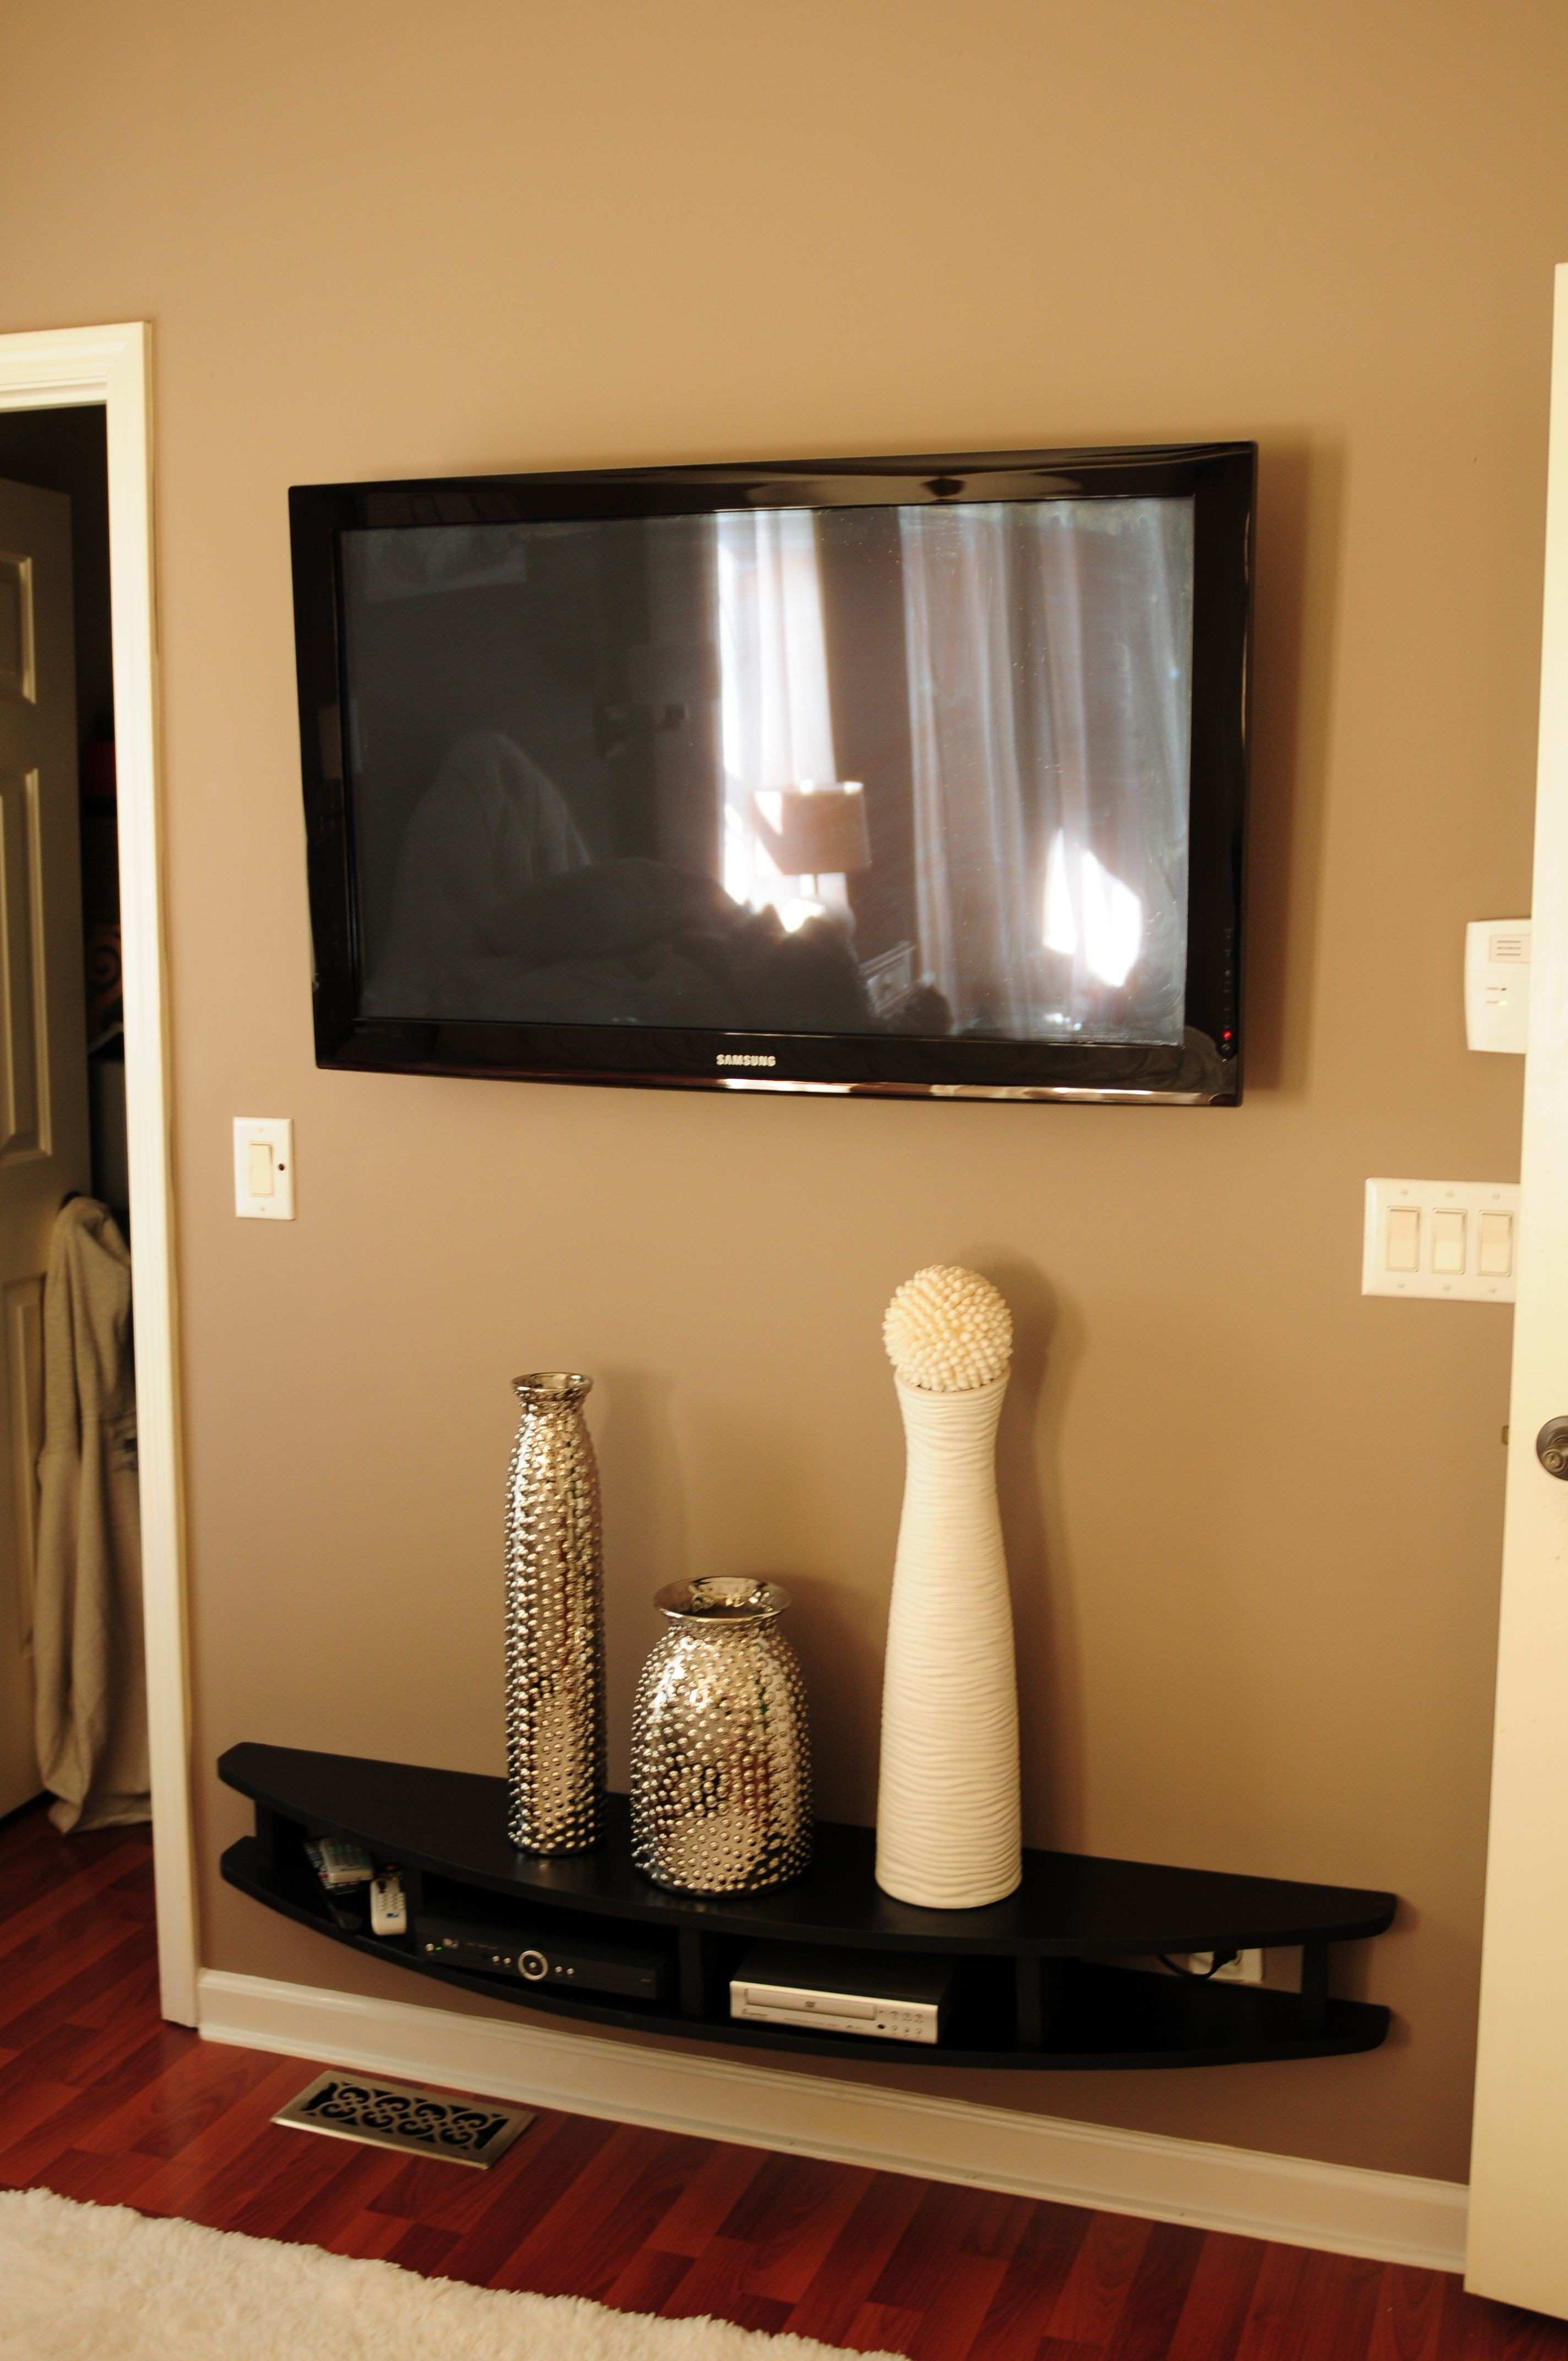 Hubby built modern shelves to wall mount under tv He is so smart